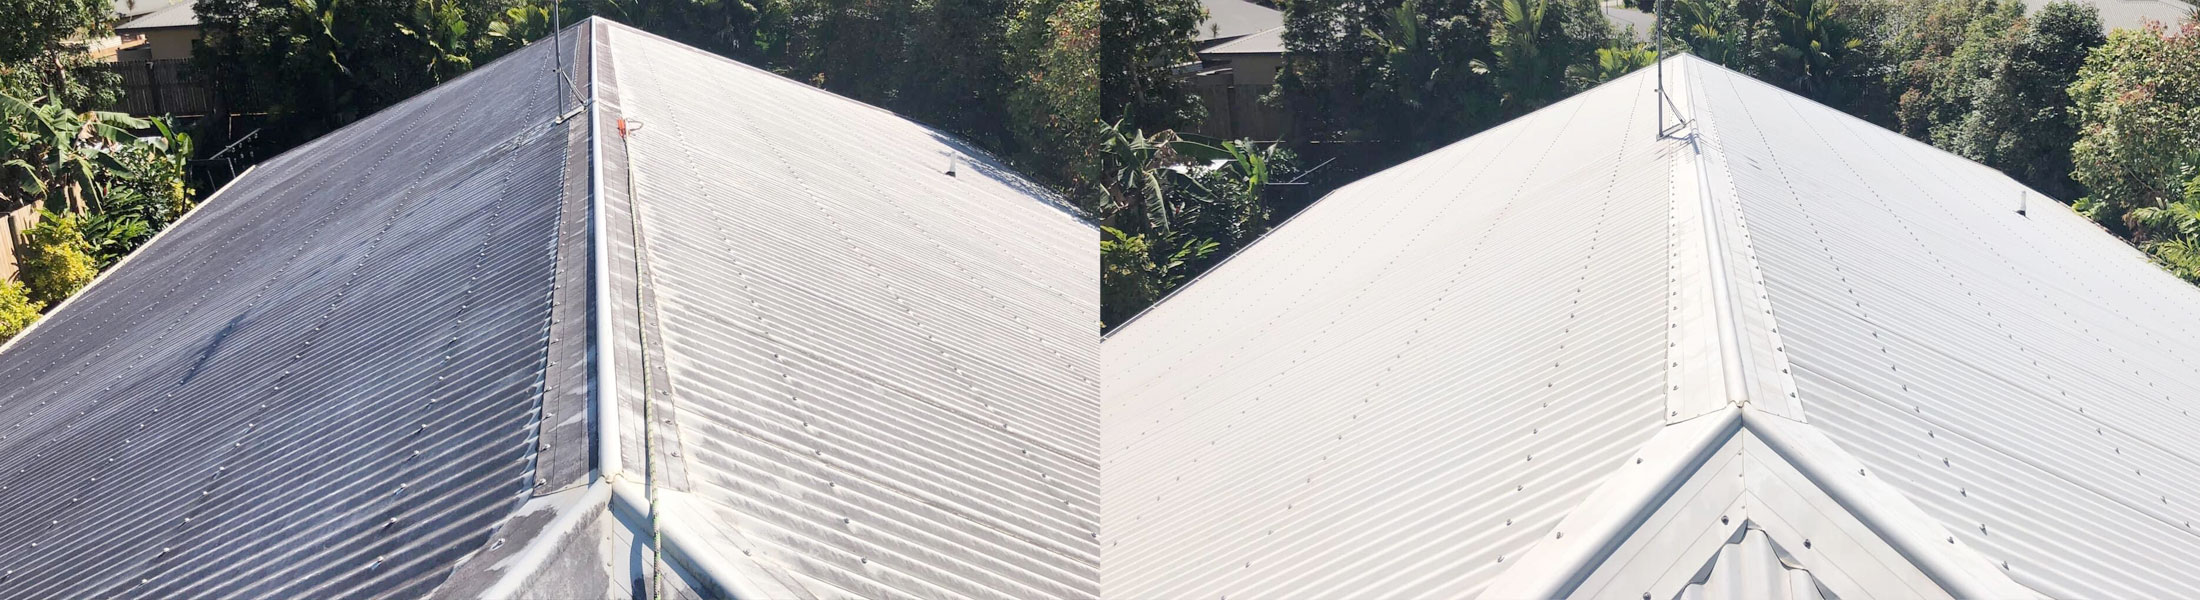 Cairns pressure cleaning roofs